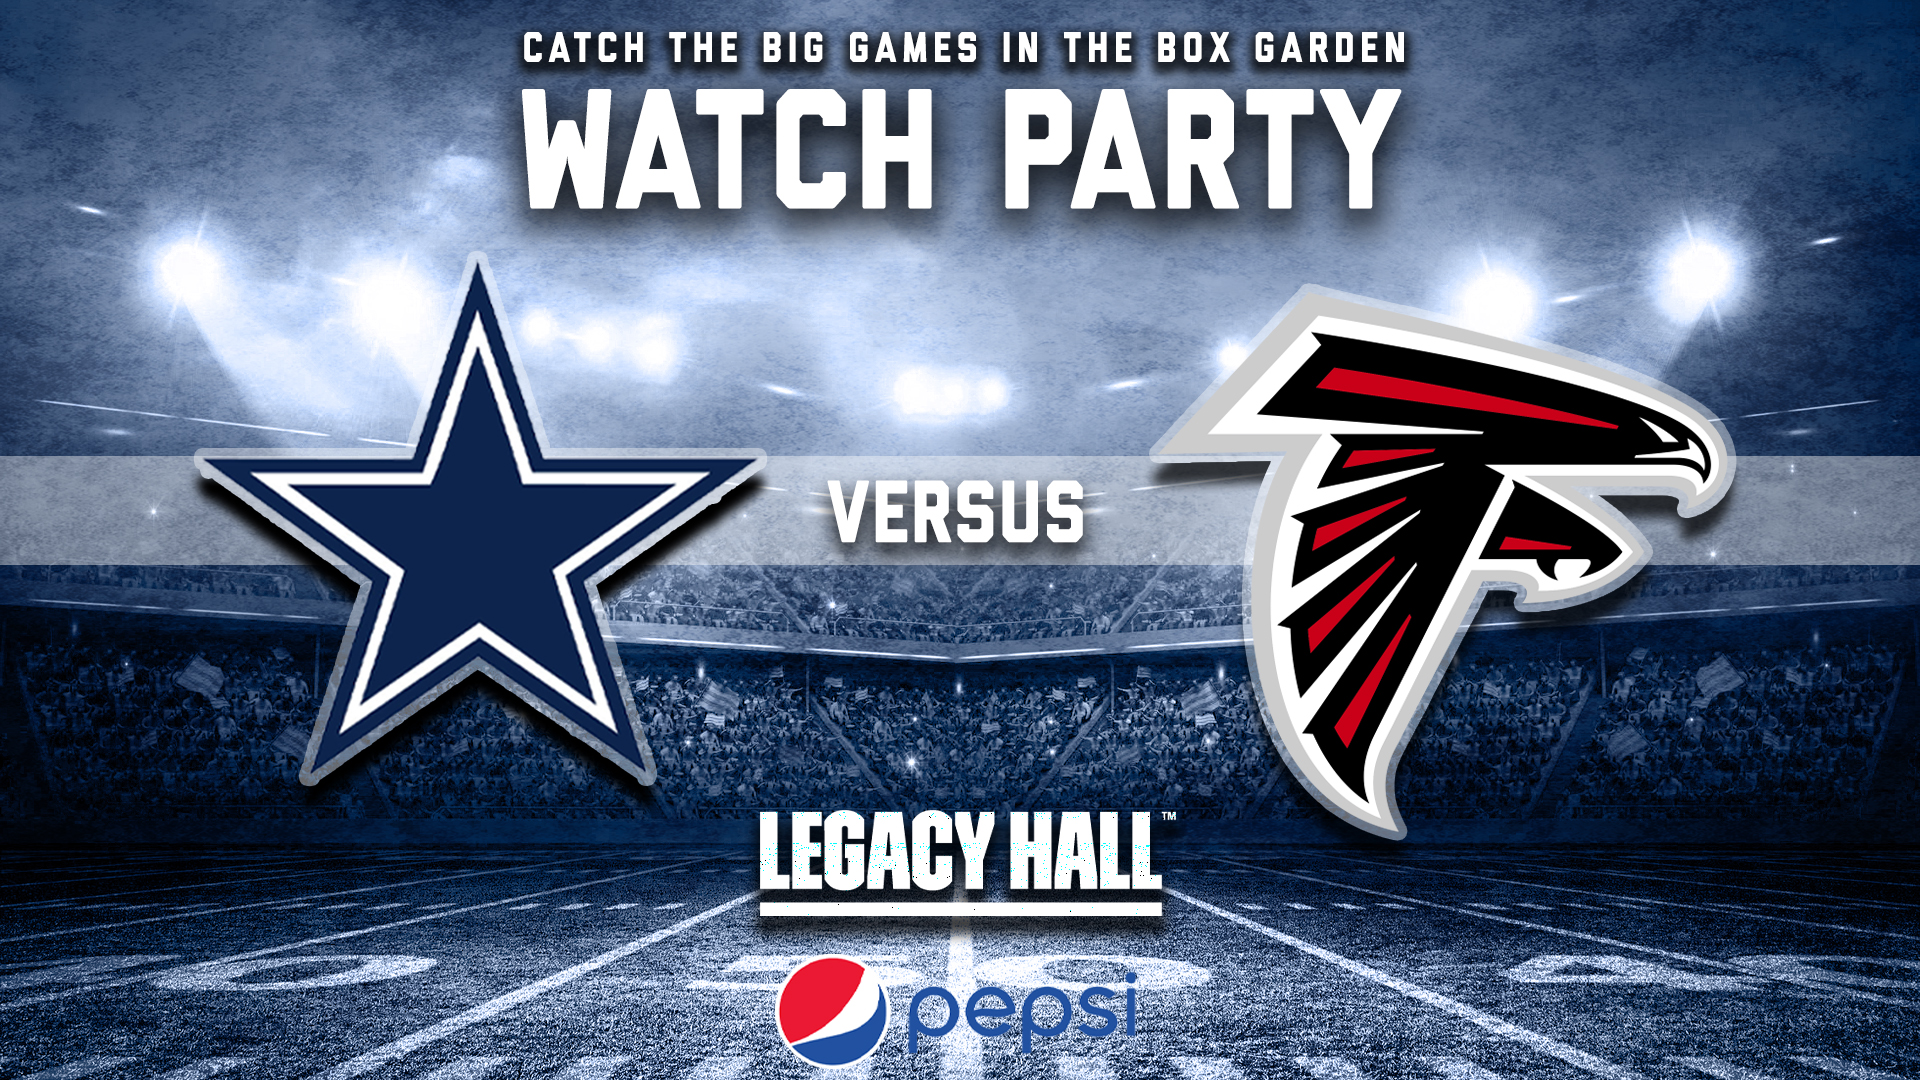 Cowboys vs. Falcons Watch Party - hero